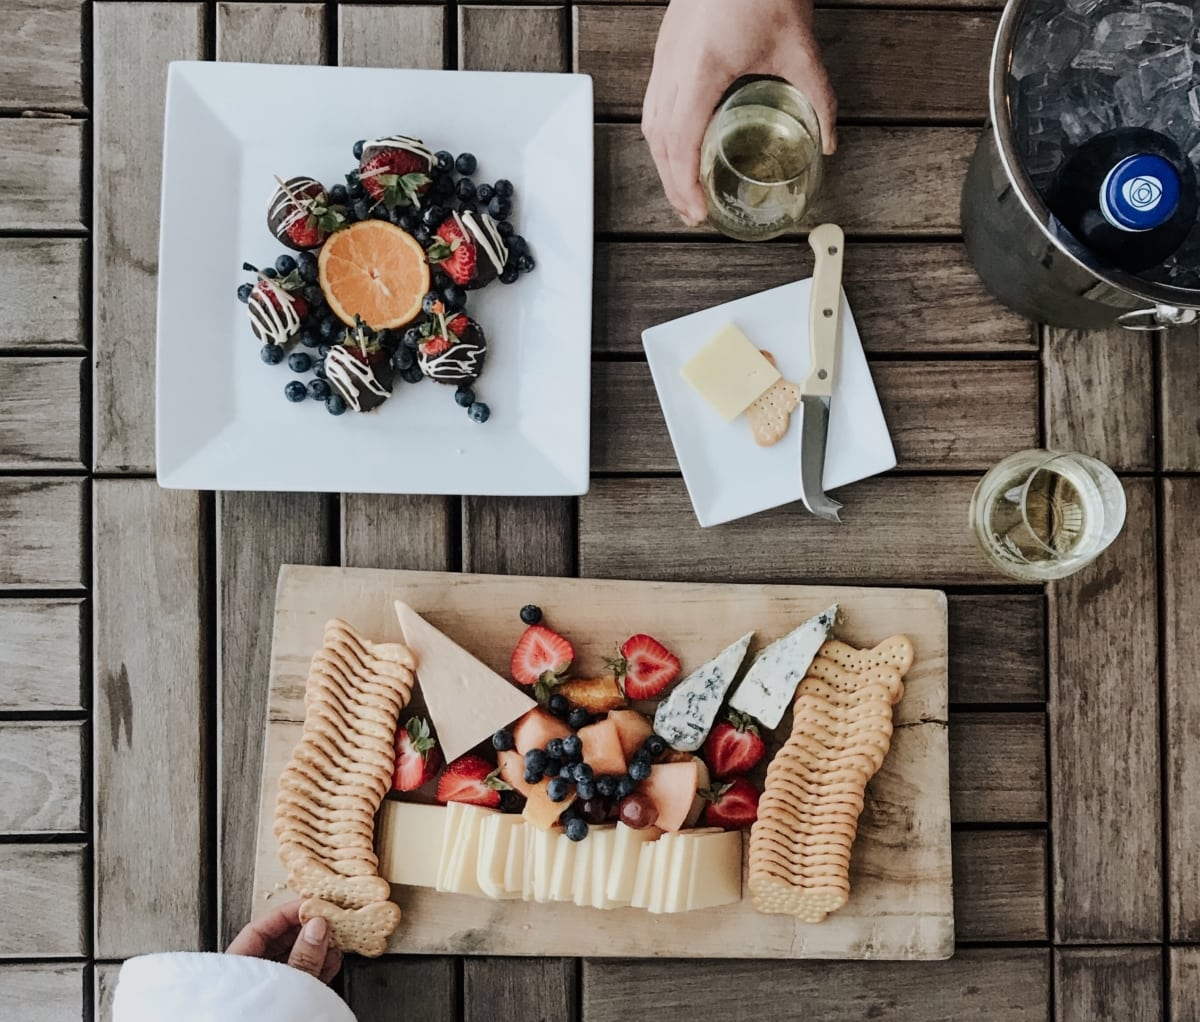 Cheese Platter with crackers and fruit and side of chocolate covered strawberries